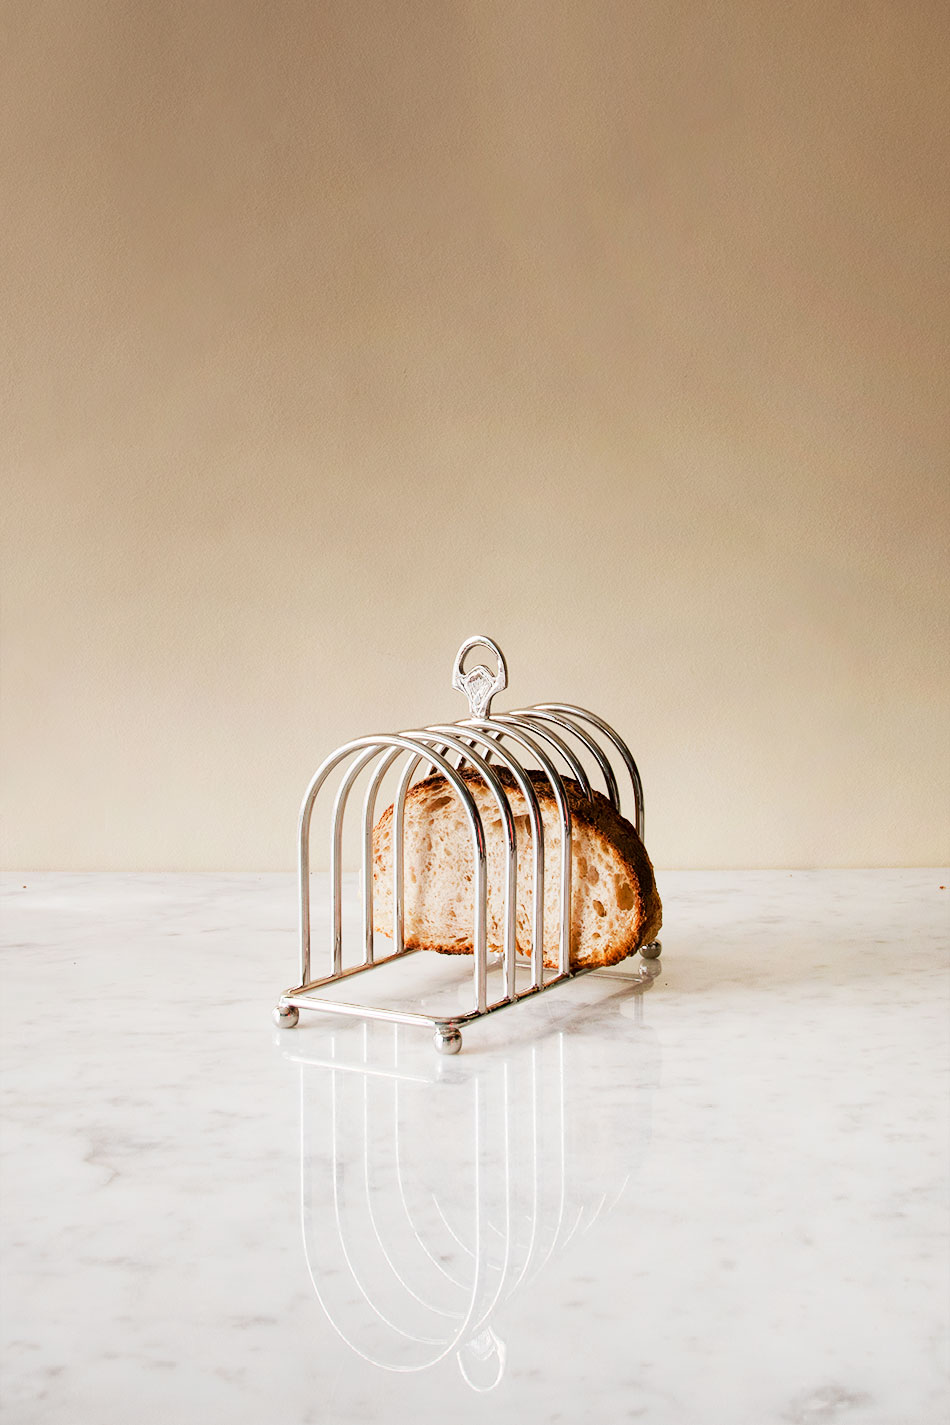 The Hotel Toast stand